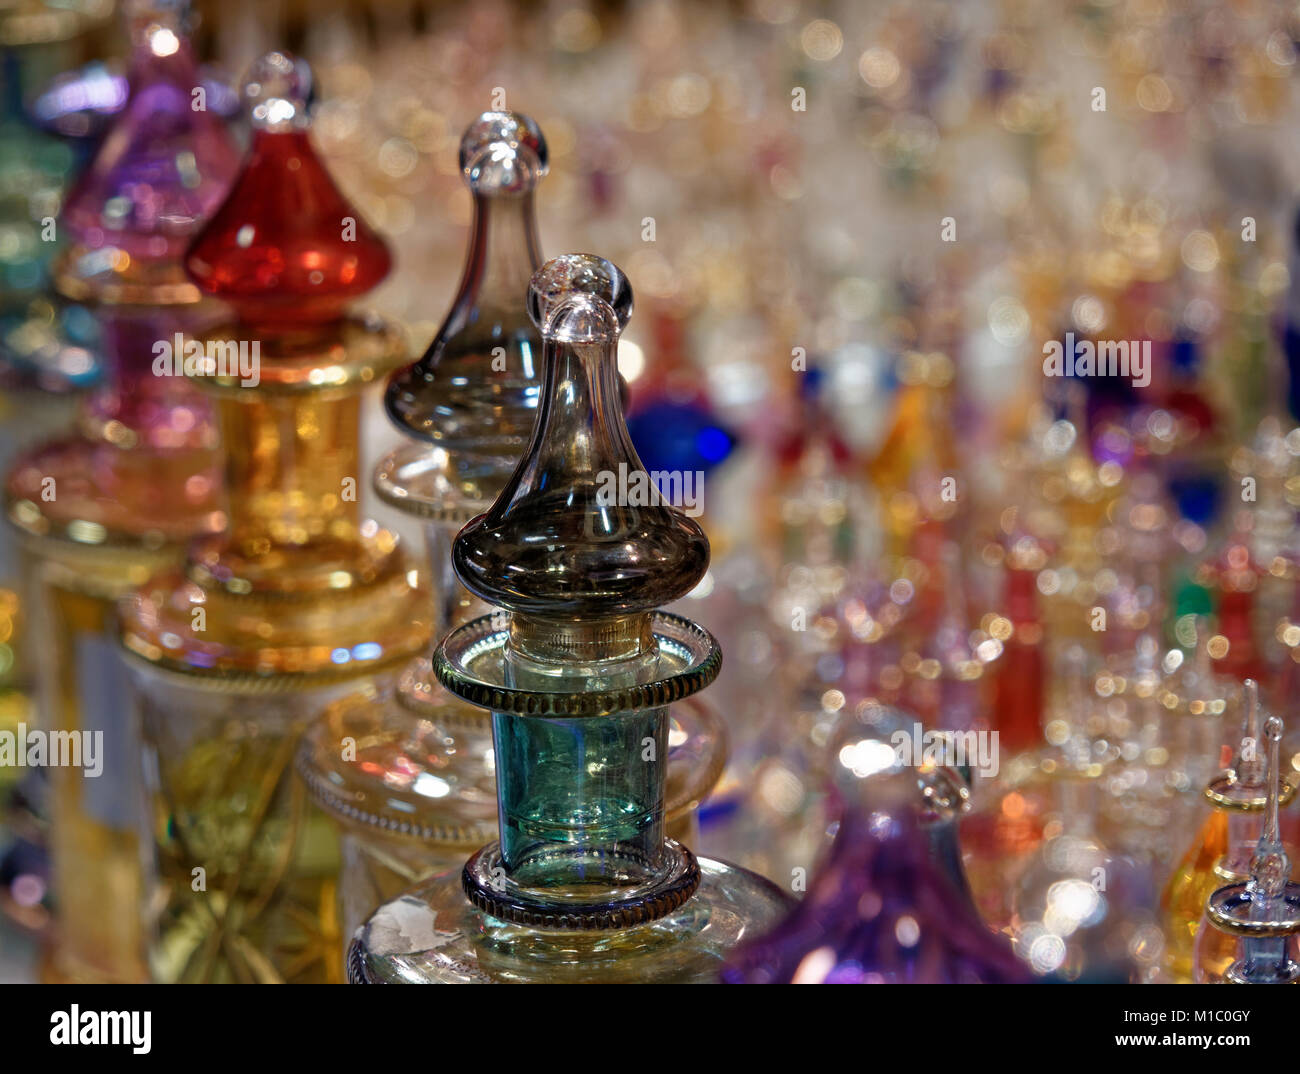 Amphorae with essential oils for perfume from Arab countries, Tunesia - Stock Image